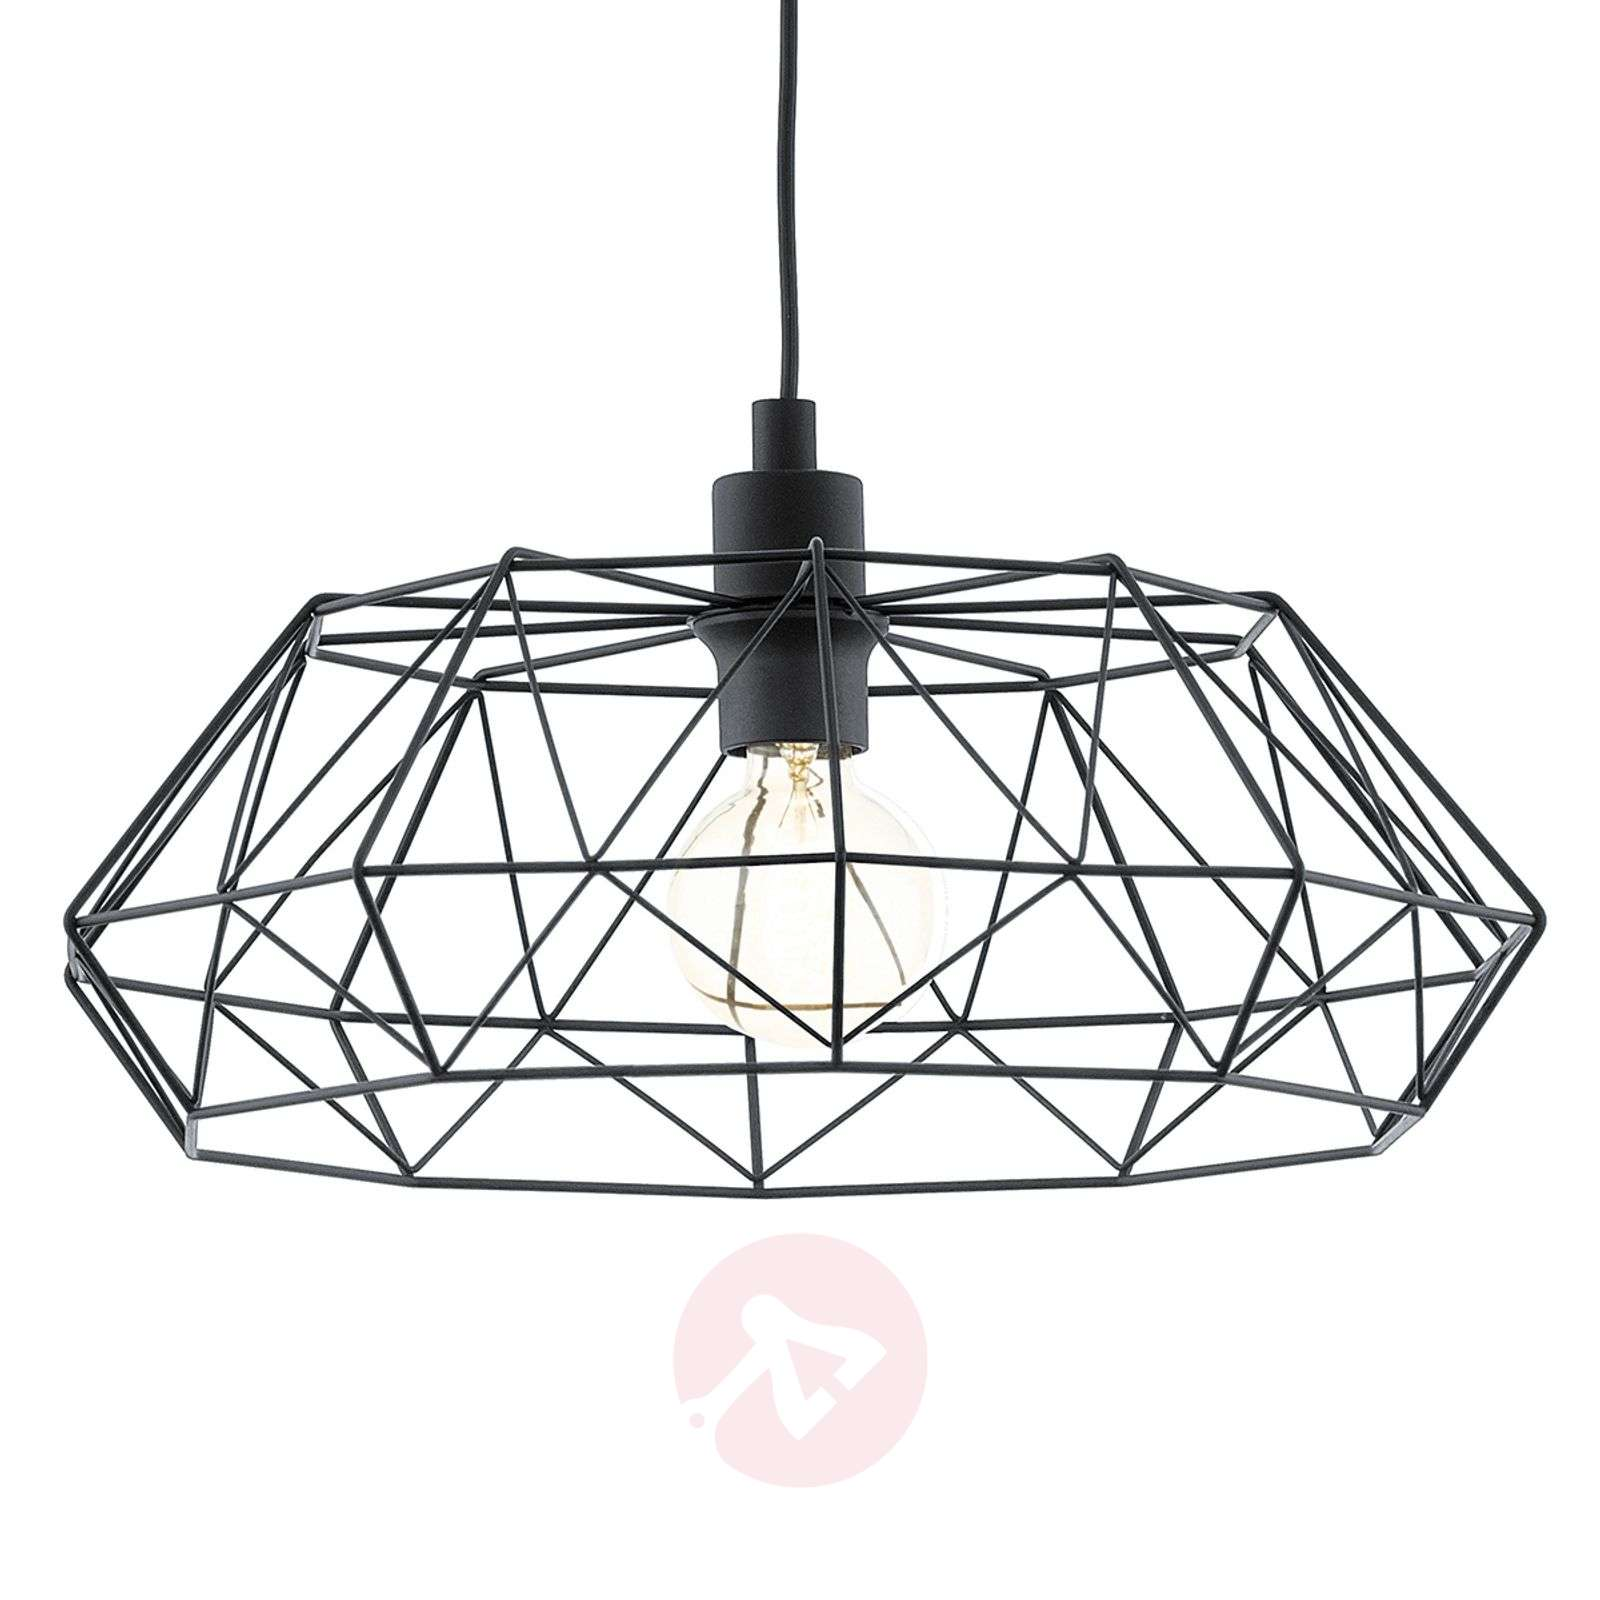 en e pendant b lighting architonic vintage light leds product by general from